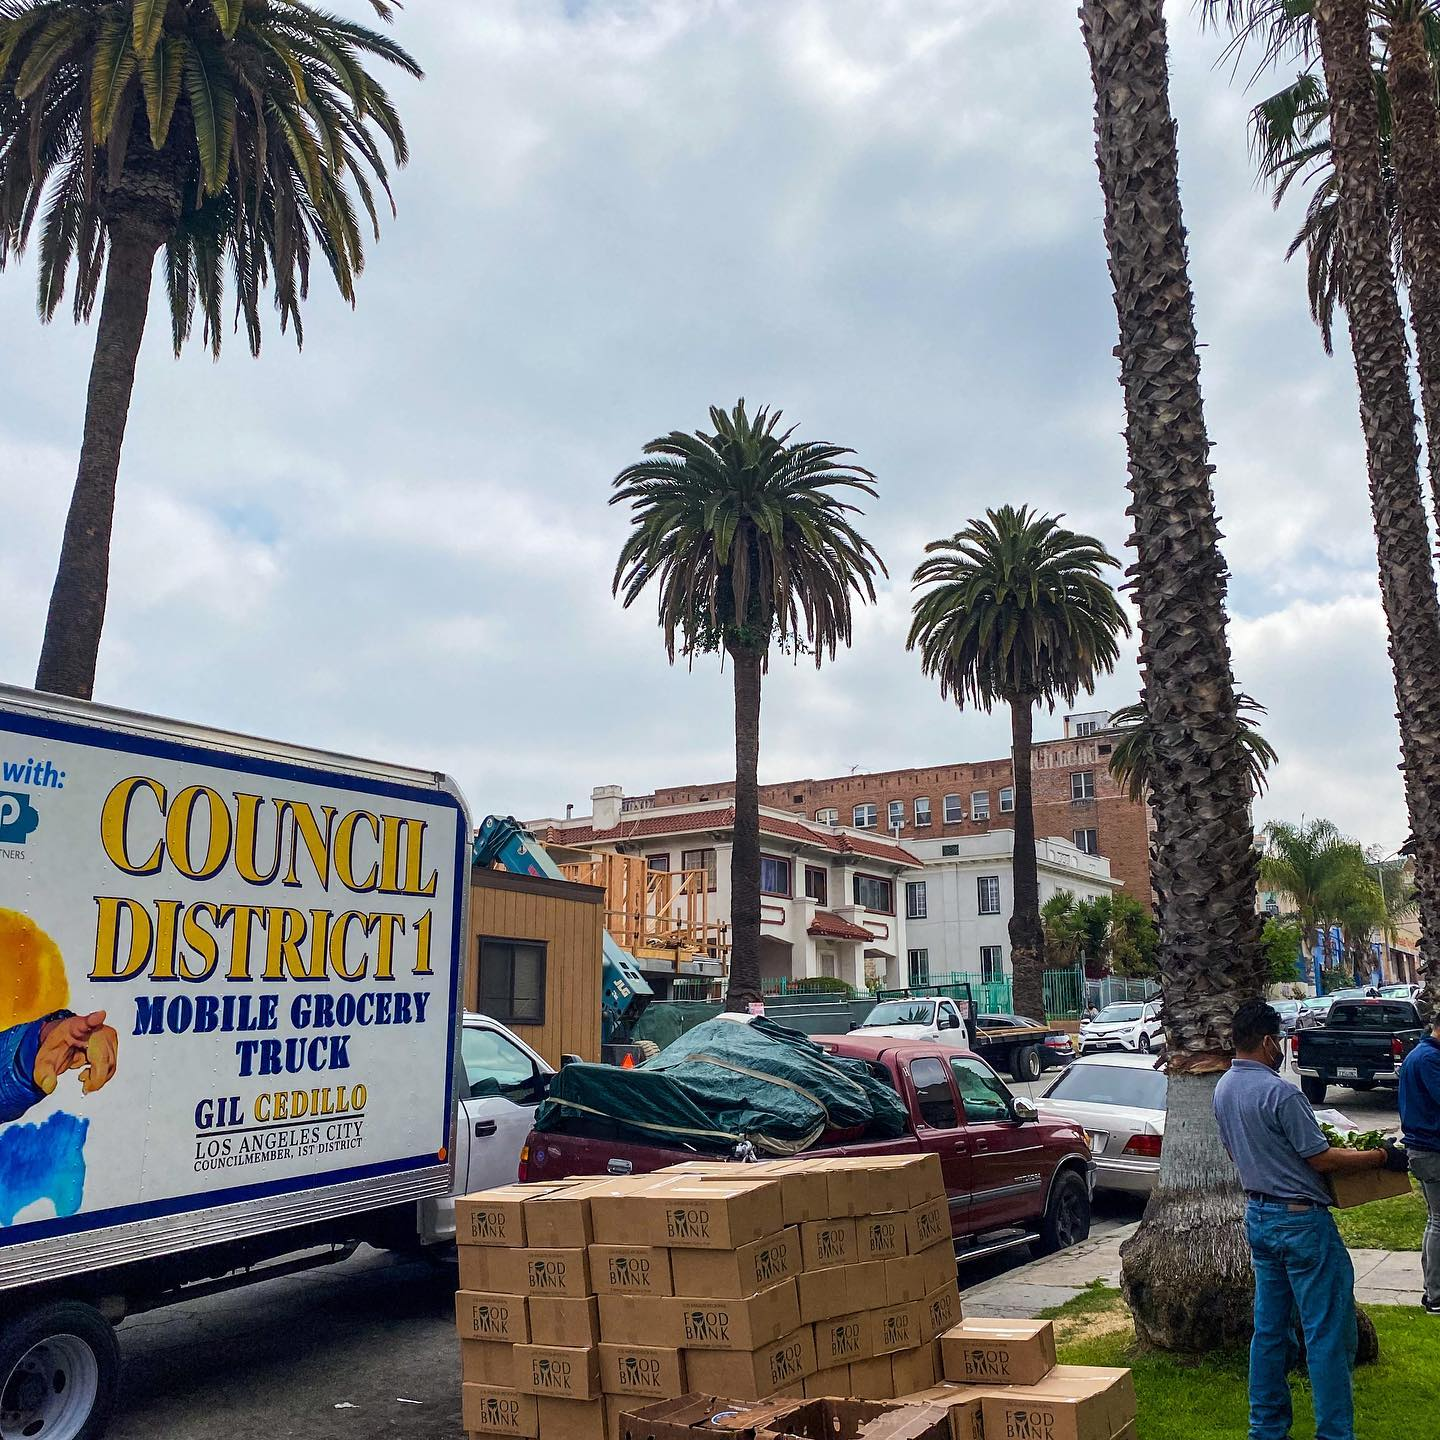 Councilmember Gil Cedillo's Mobile Grocery Truck was parked Leeward Ave and Magnolia St in Westlake 5-14-2021 #2